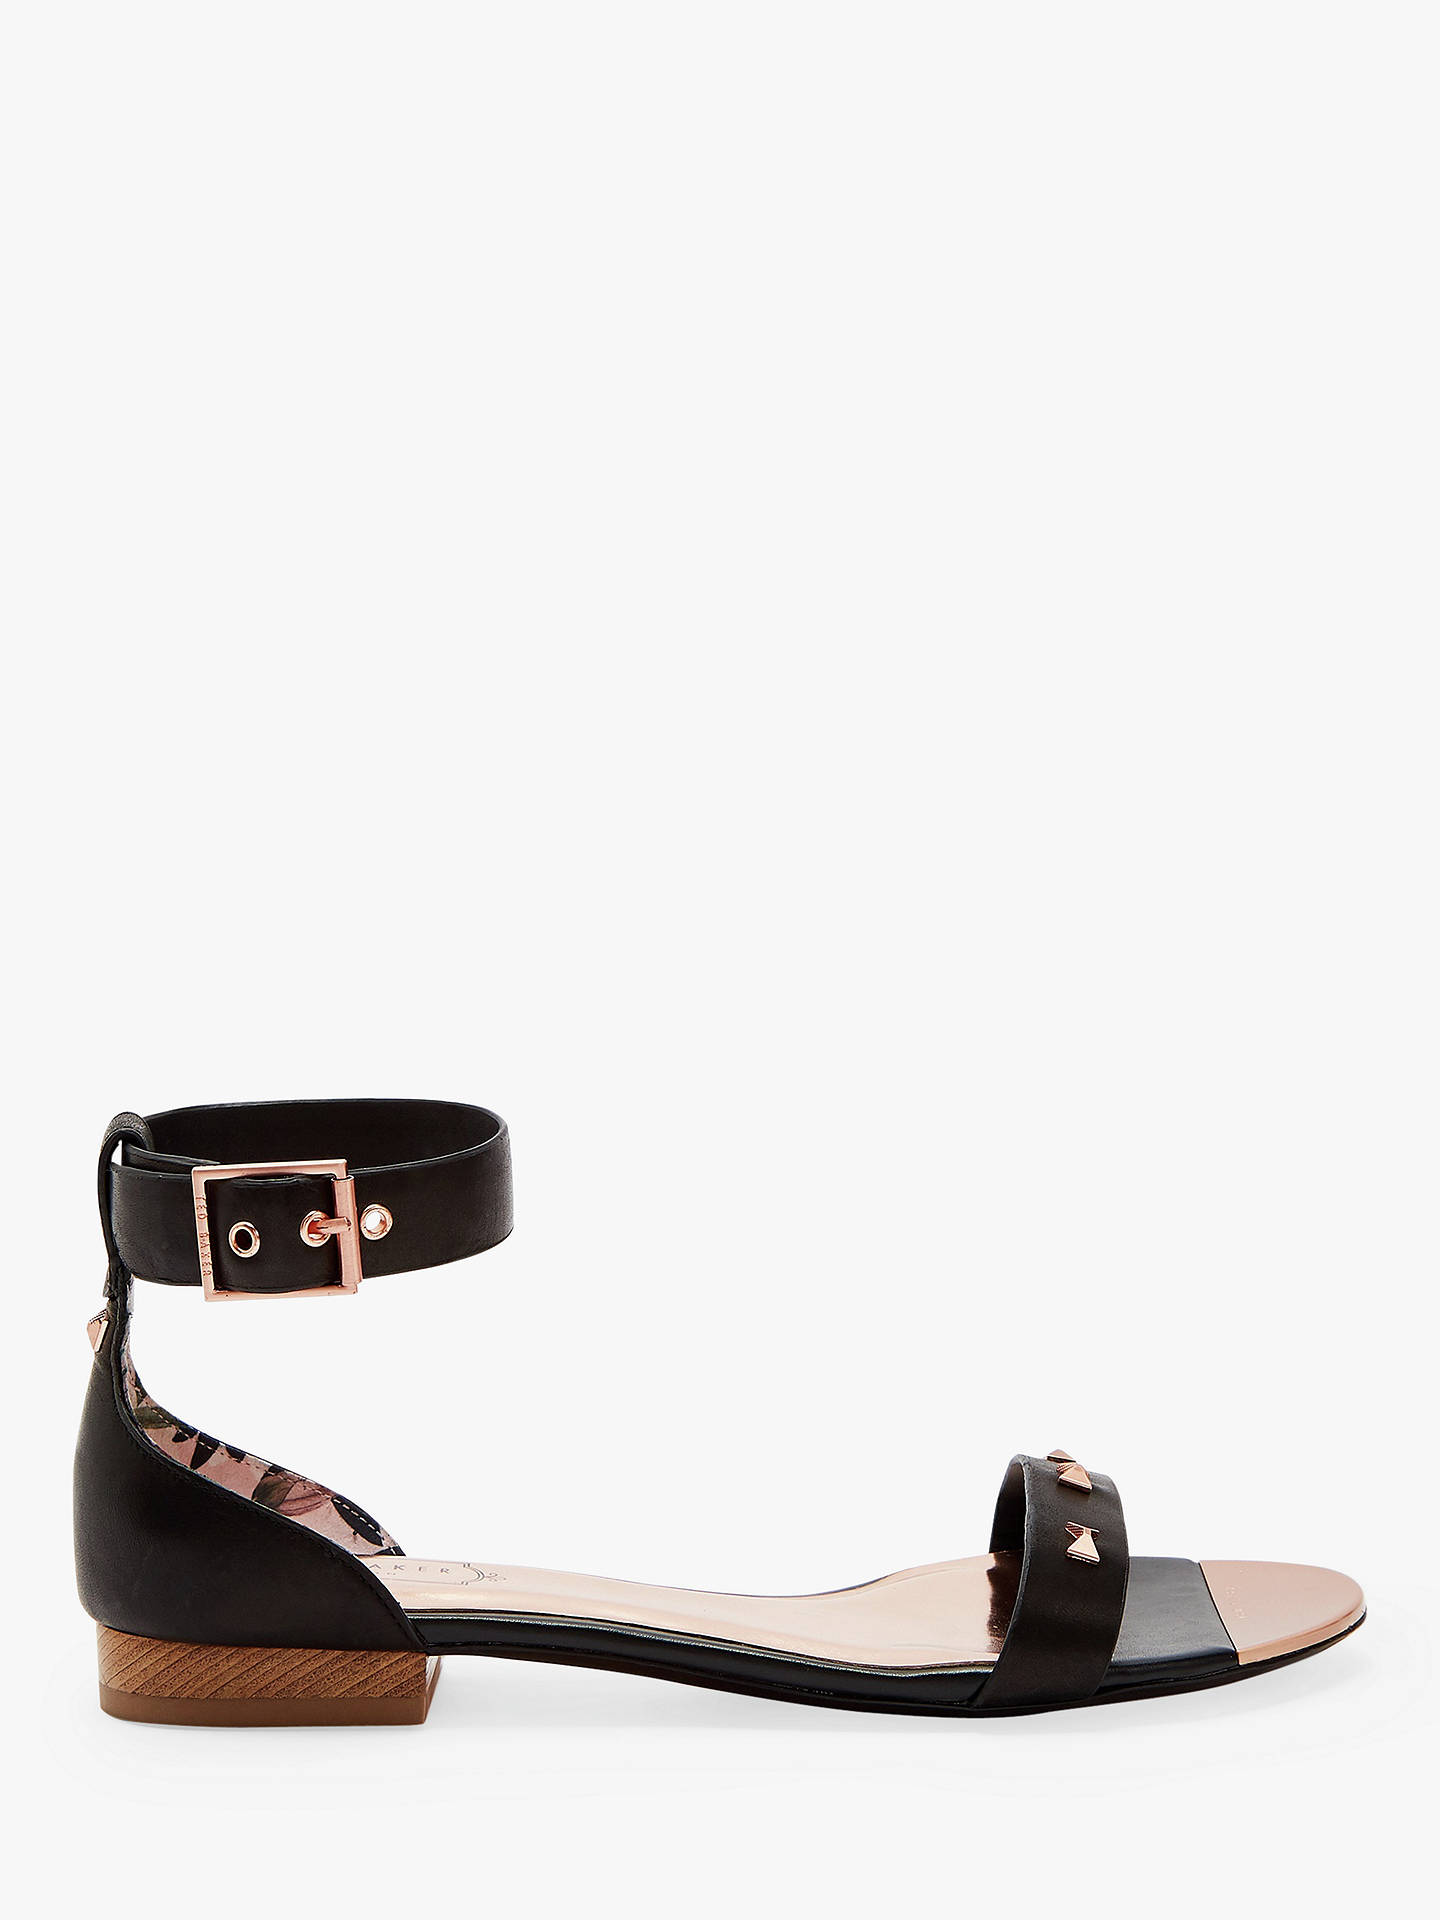 e924bc4997ef Ted Baker Ovey Stud Low Block Heel Sandals at John Lewis   Partners